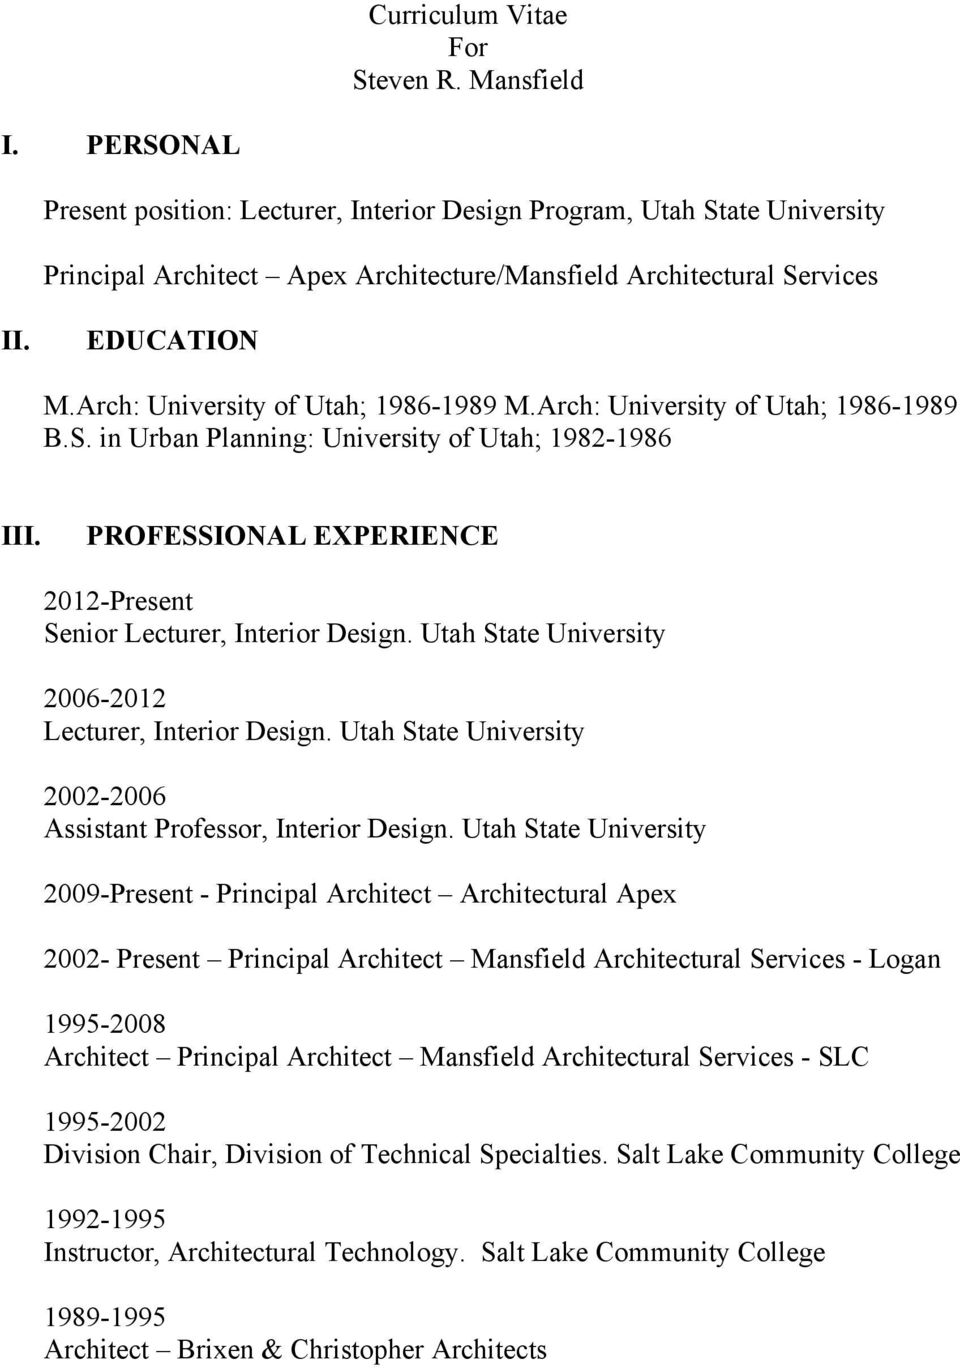 curriculum vitae for steven r mansfield present position lecturer